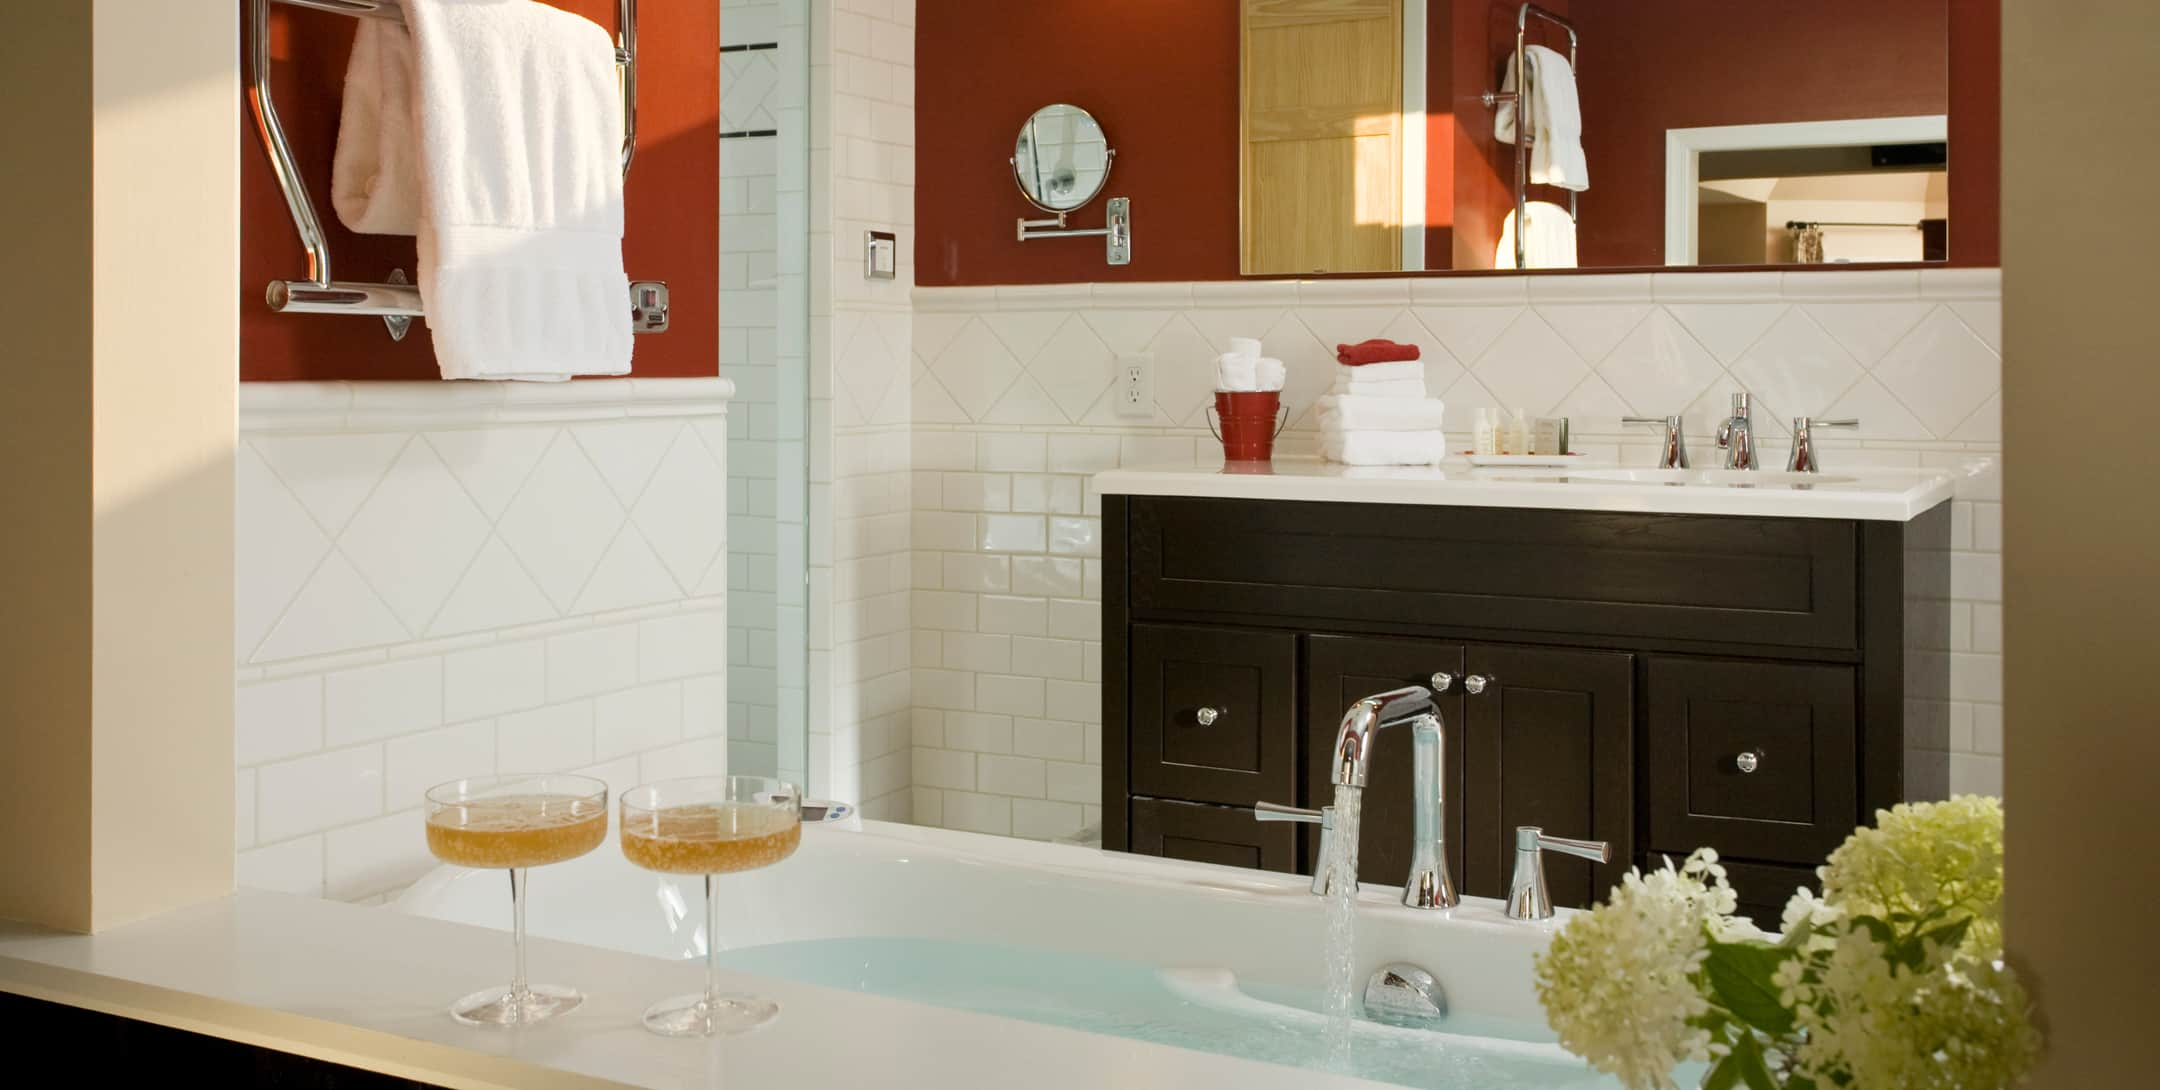 Marley's Cottage bathroom with large jetted tub